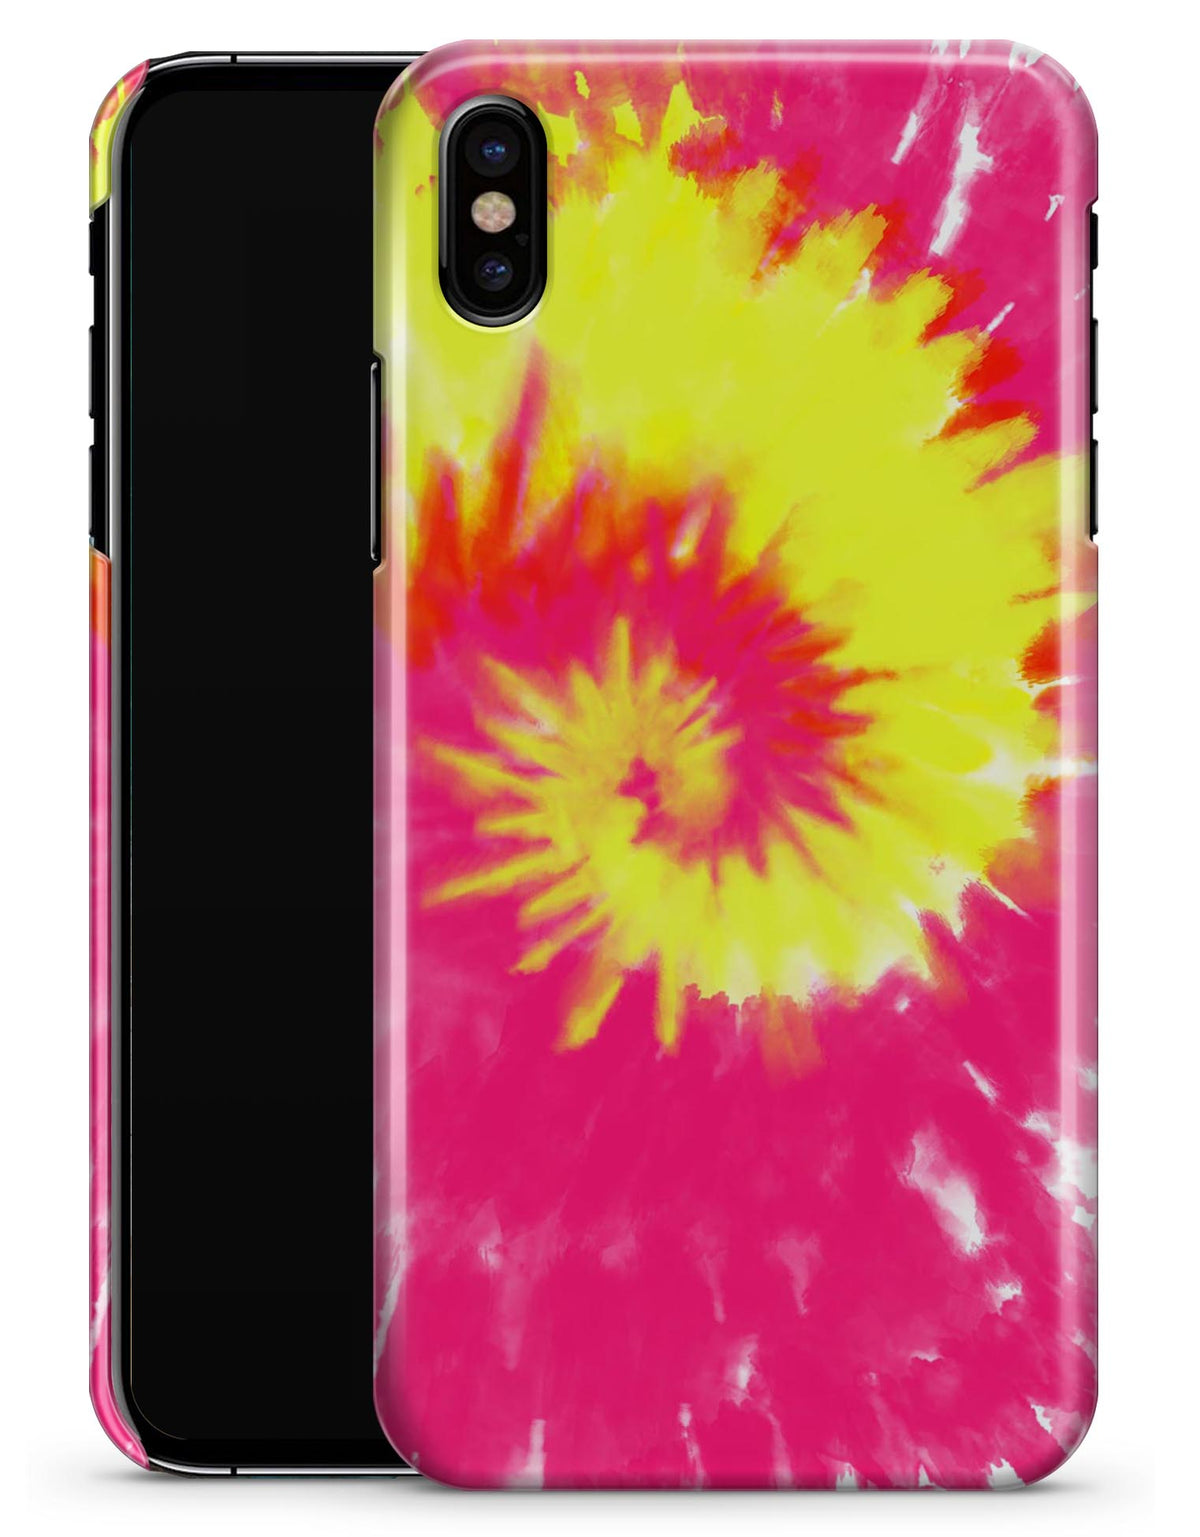 reputable site 69a29 135c3 Spiral Tie Dye V2 - iPhone X Clipit Case